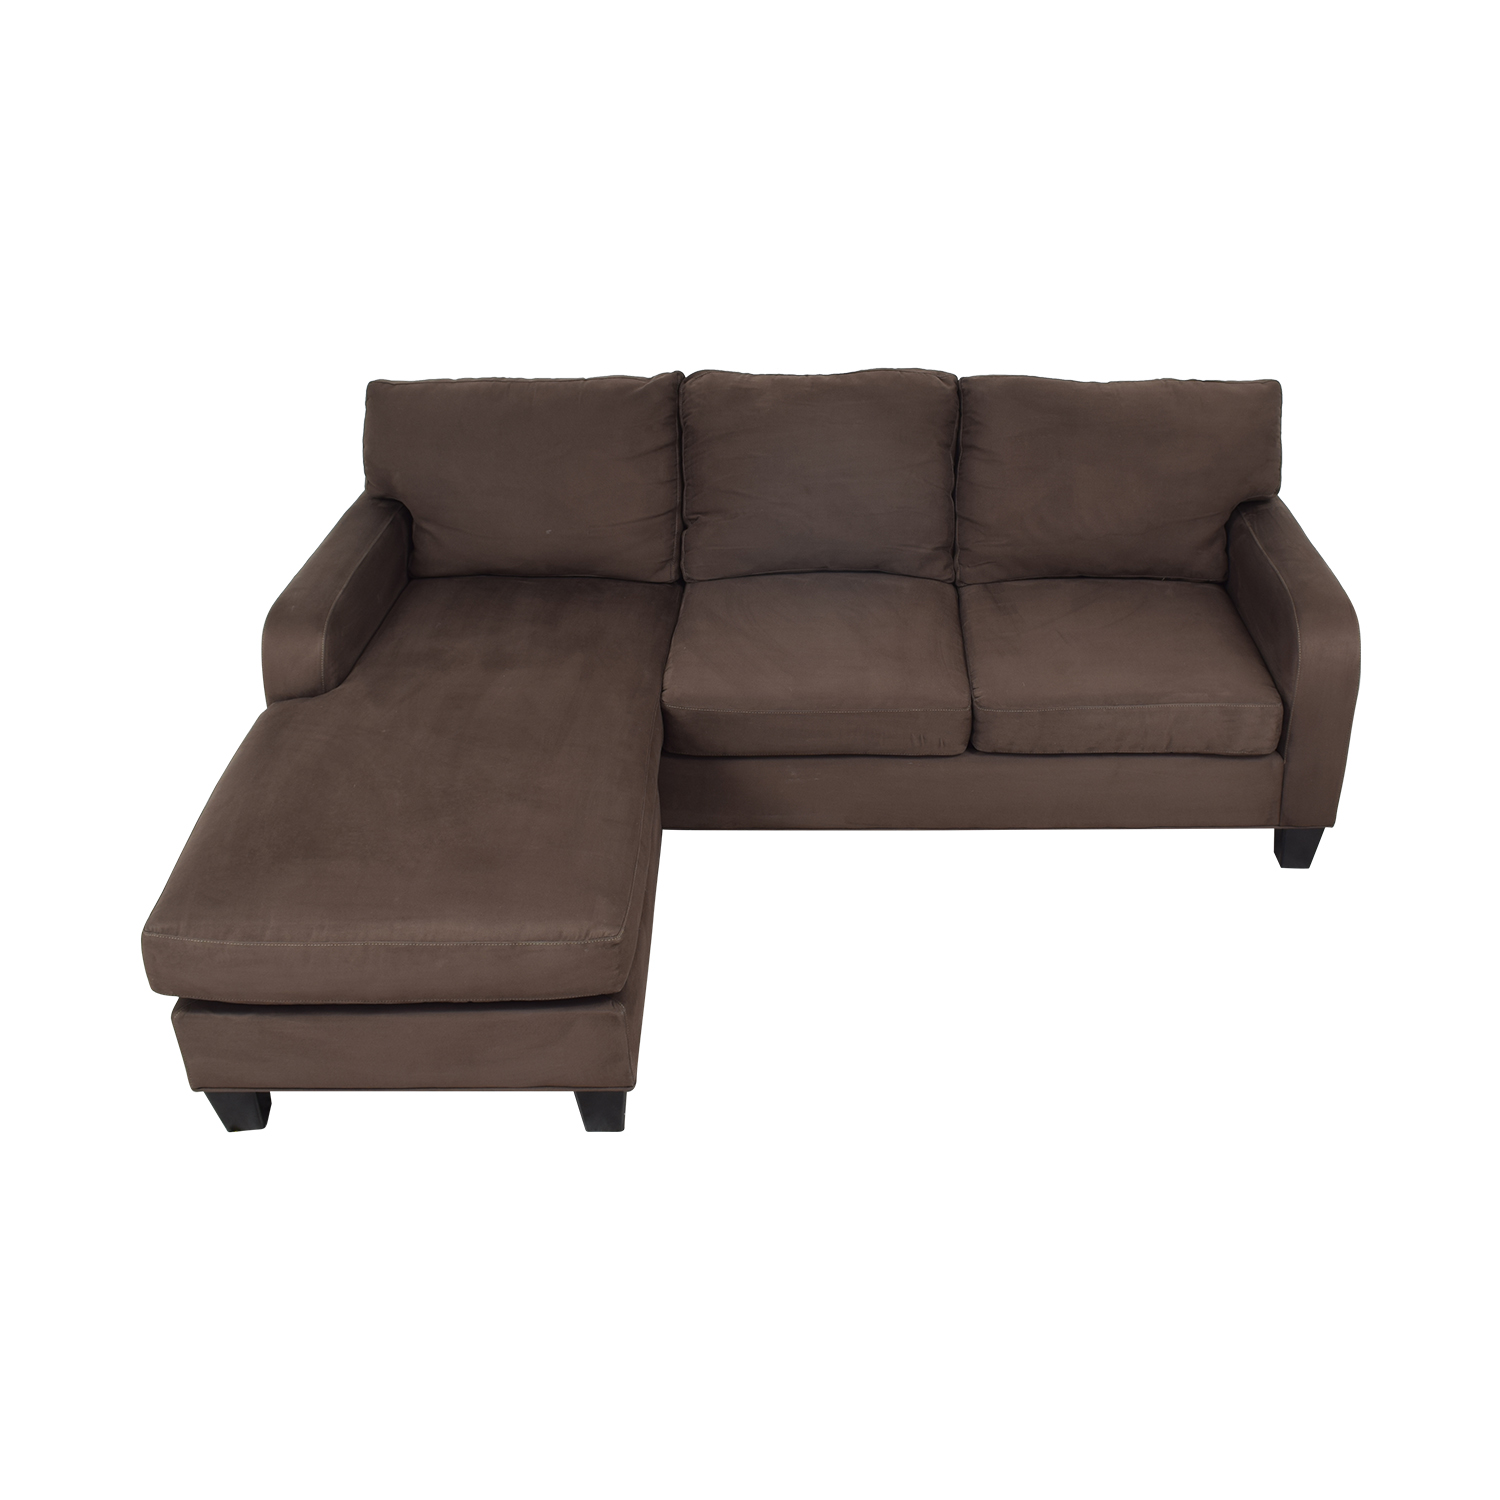 buy Raymour & Flanigan Sectional Sofa Raymour & Flanigan Sectionals